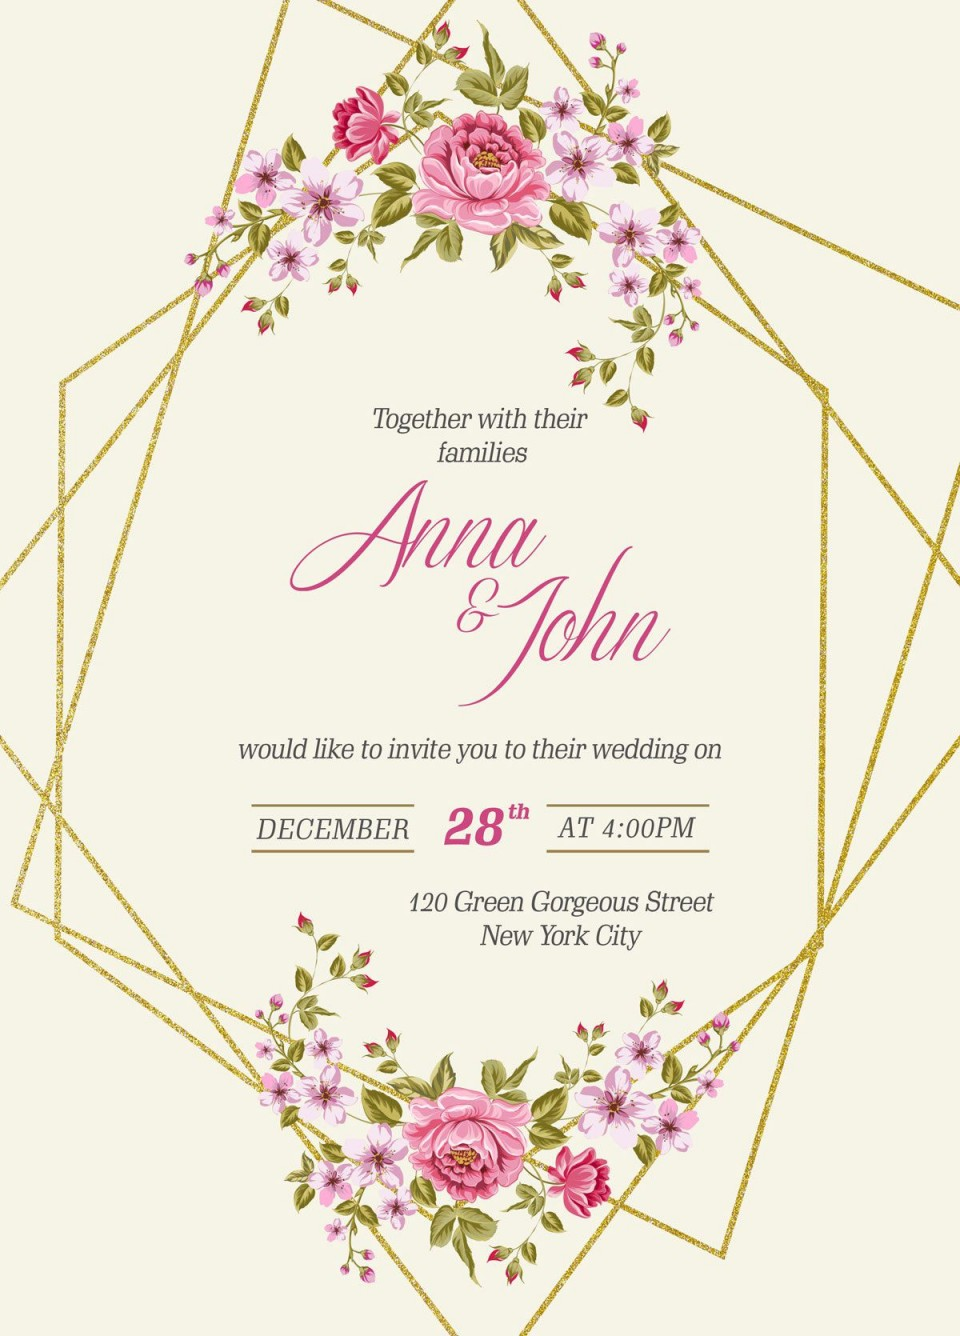 007 Outstanding Free Download Invitation Card Template Psd Image  Indian Wedding Birthday960